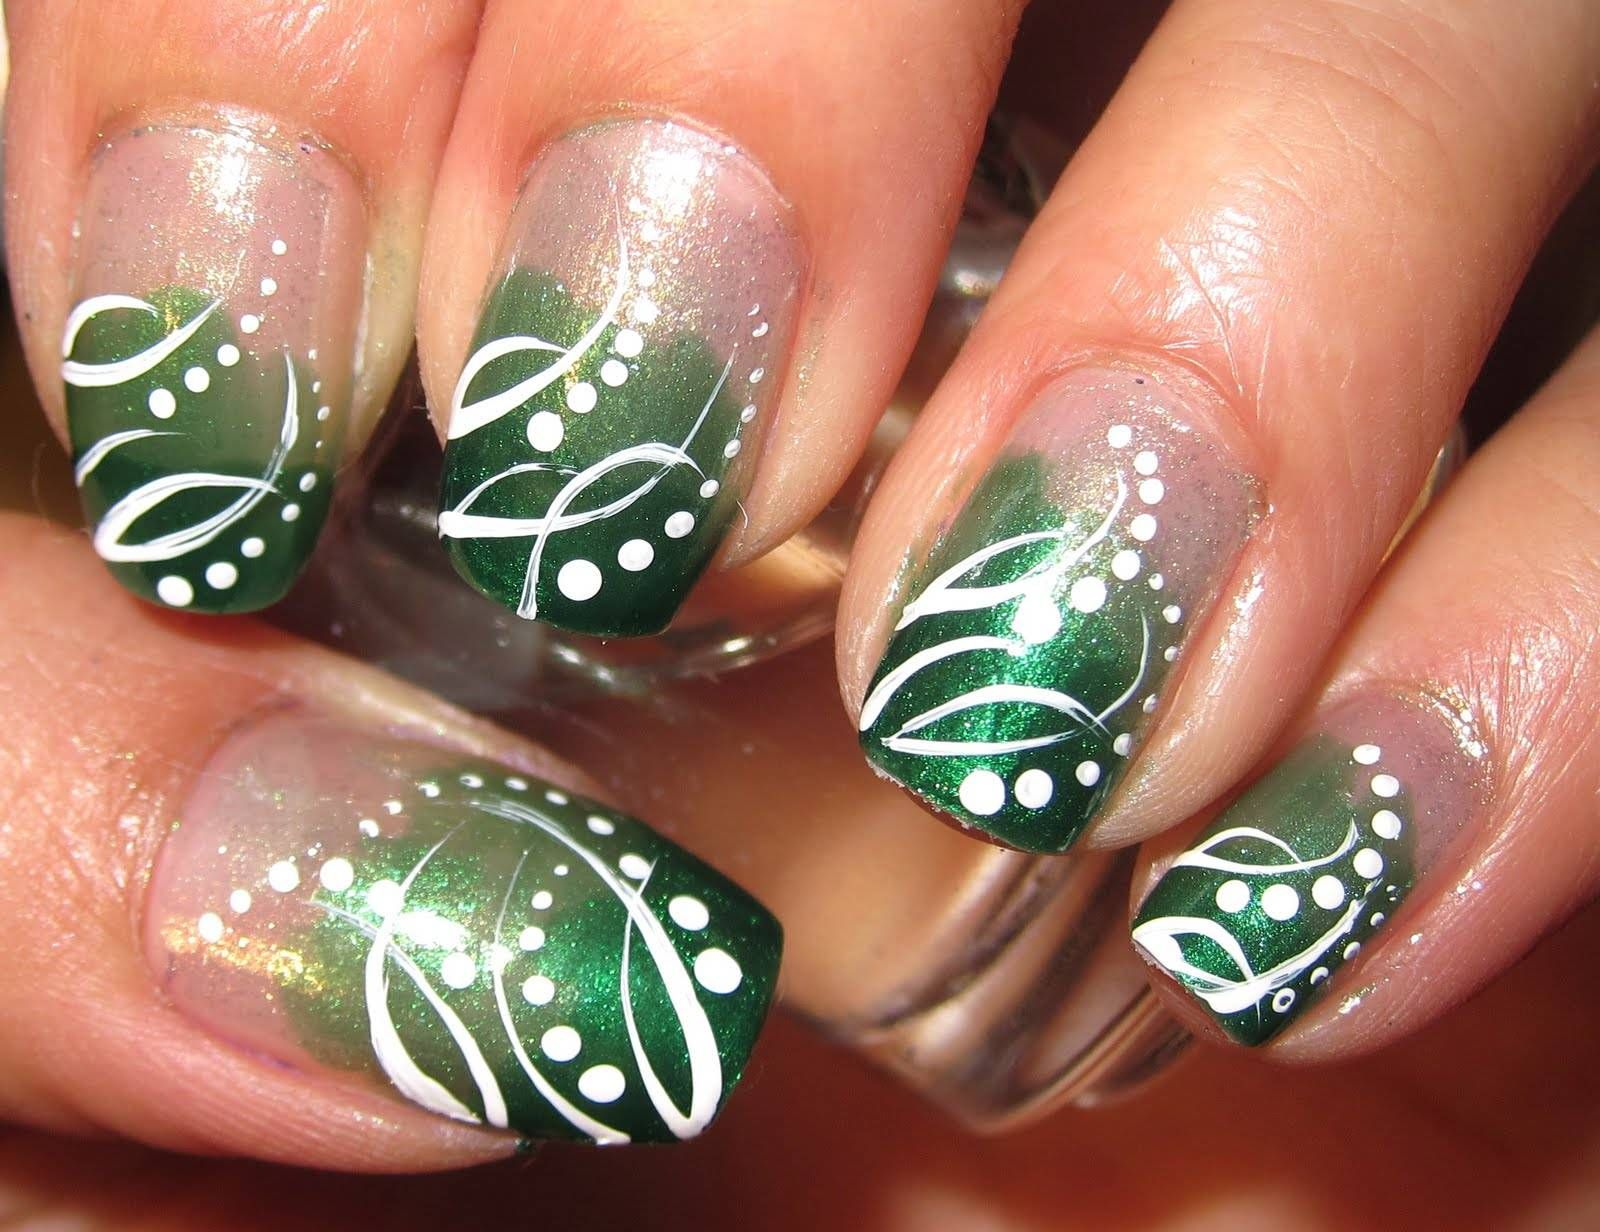 Easy Nail Art Designs And Techniques | nail design | Pinterest ...